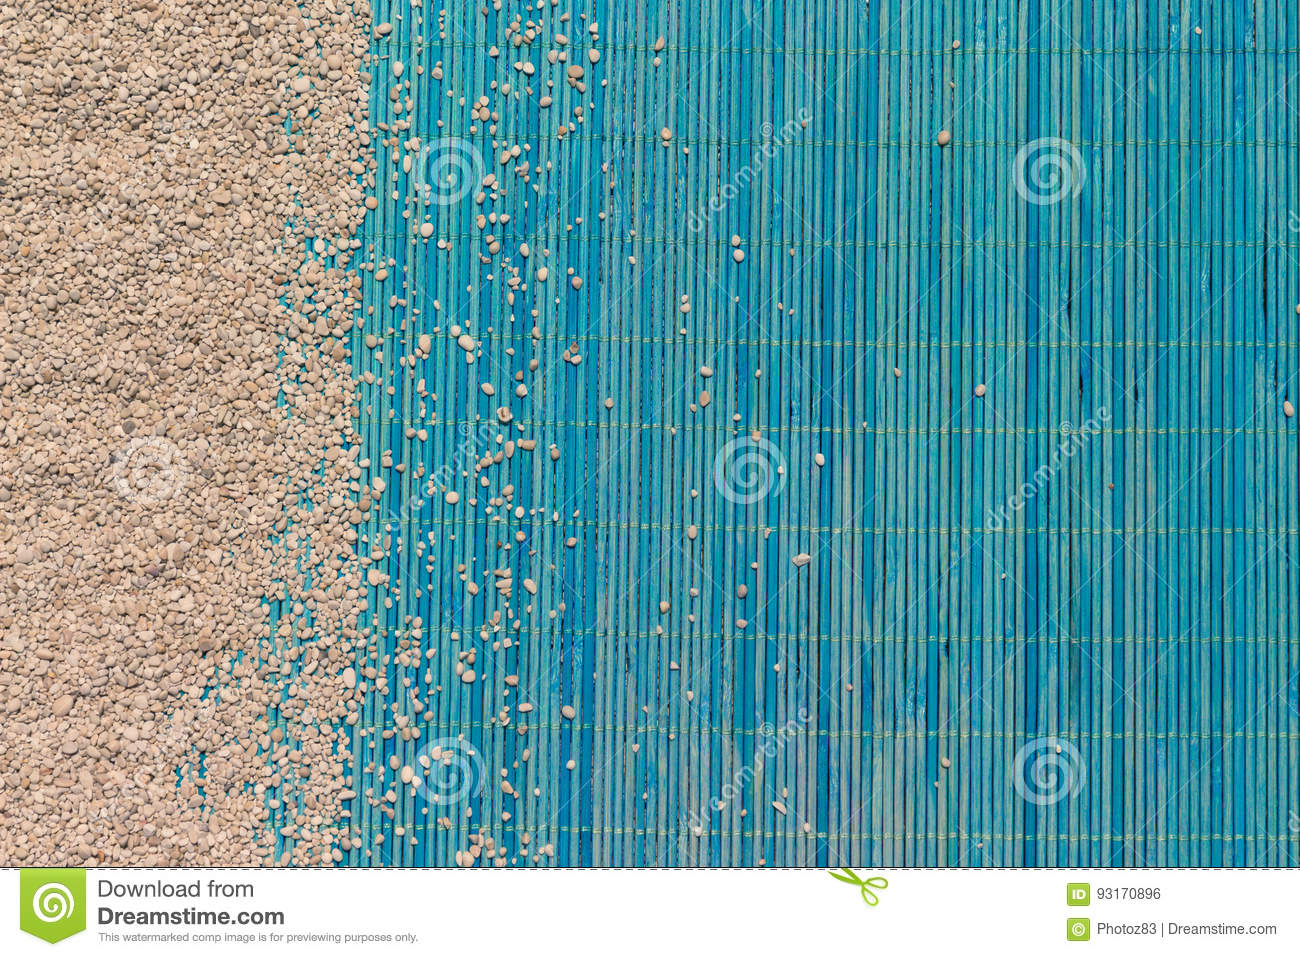 Fond De Texture De Tapis De Sable Et De Bambou Photo Stock Image